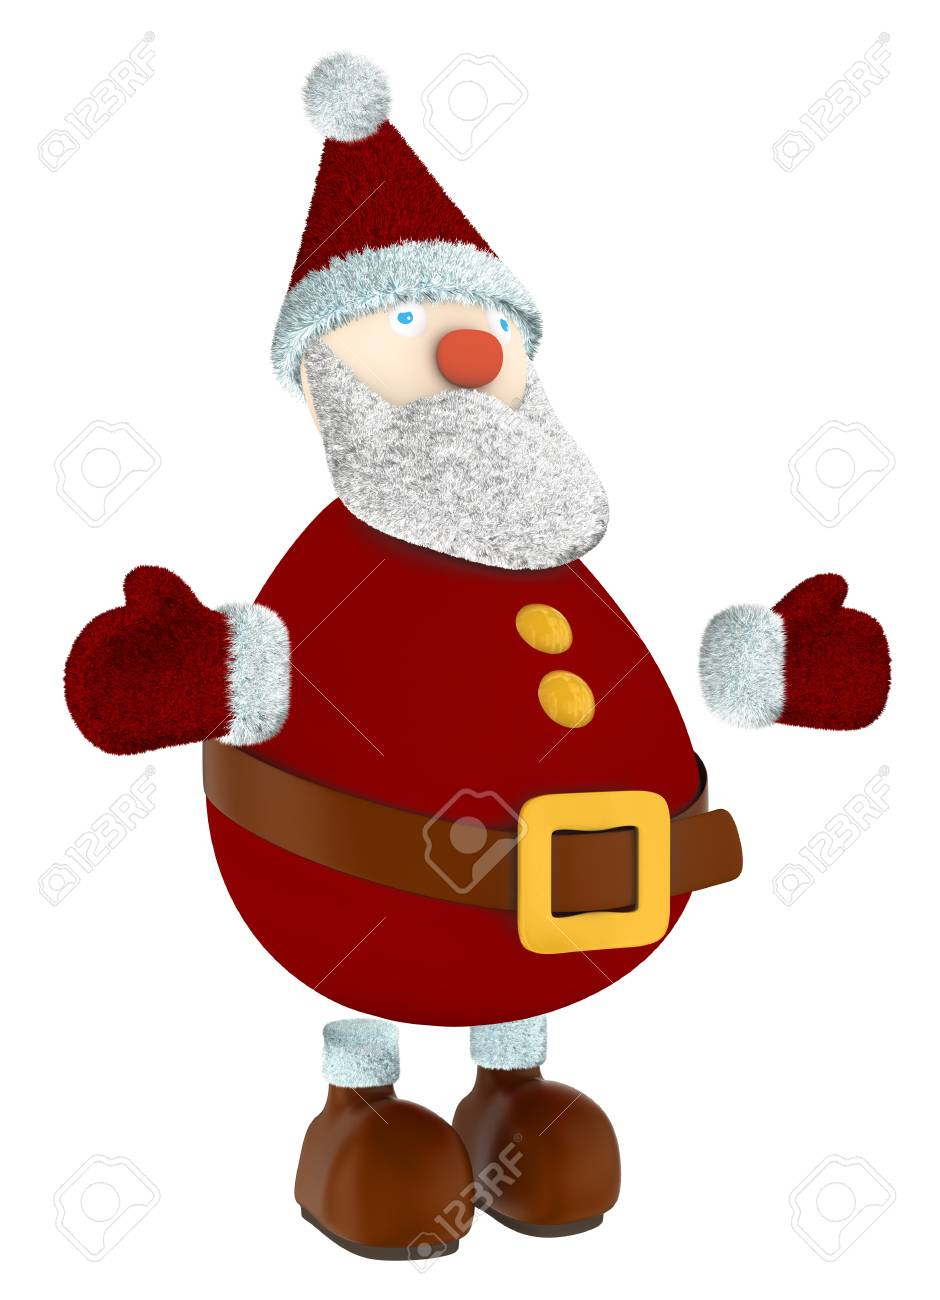 standing 3D Santa Claus isolated on white Stock Photo - 34194428